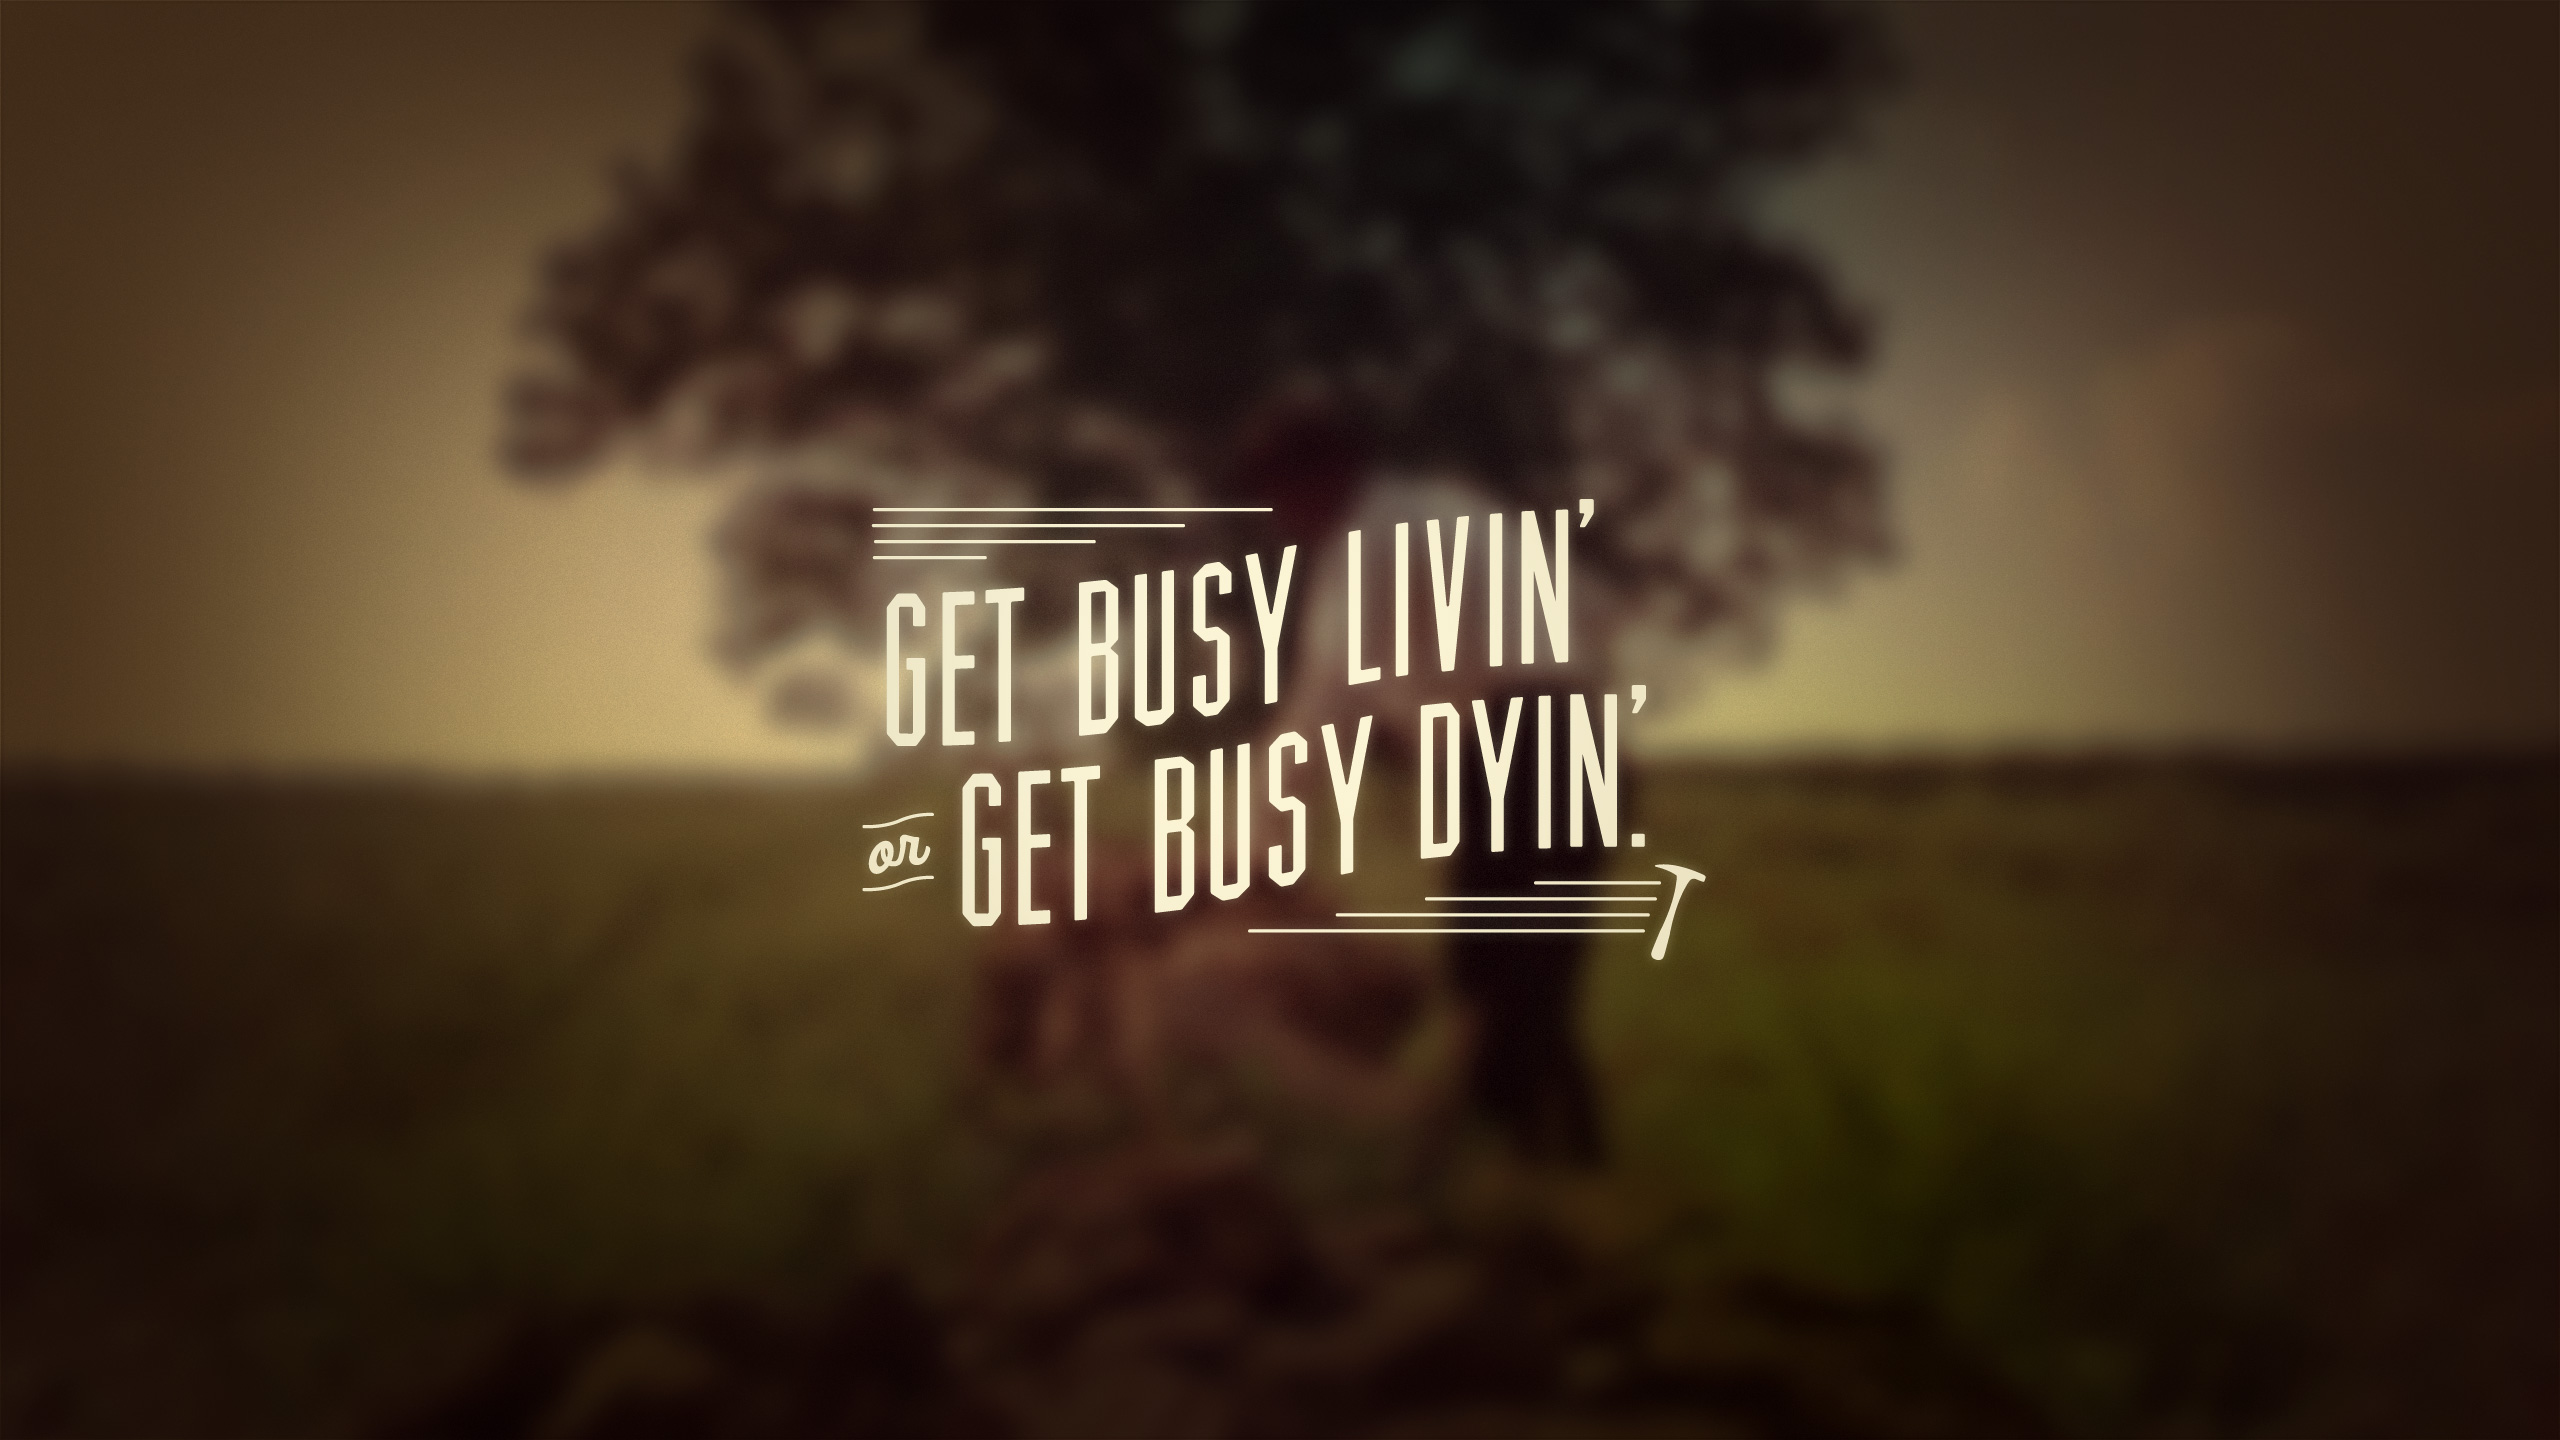 Hd Wallpapers For Pc With Quotes